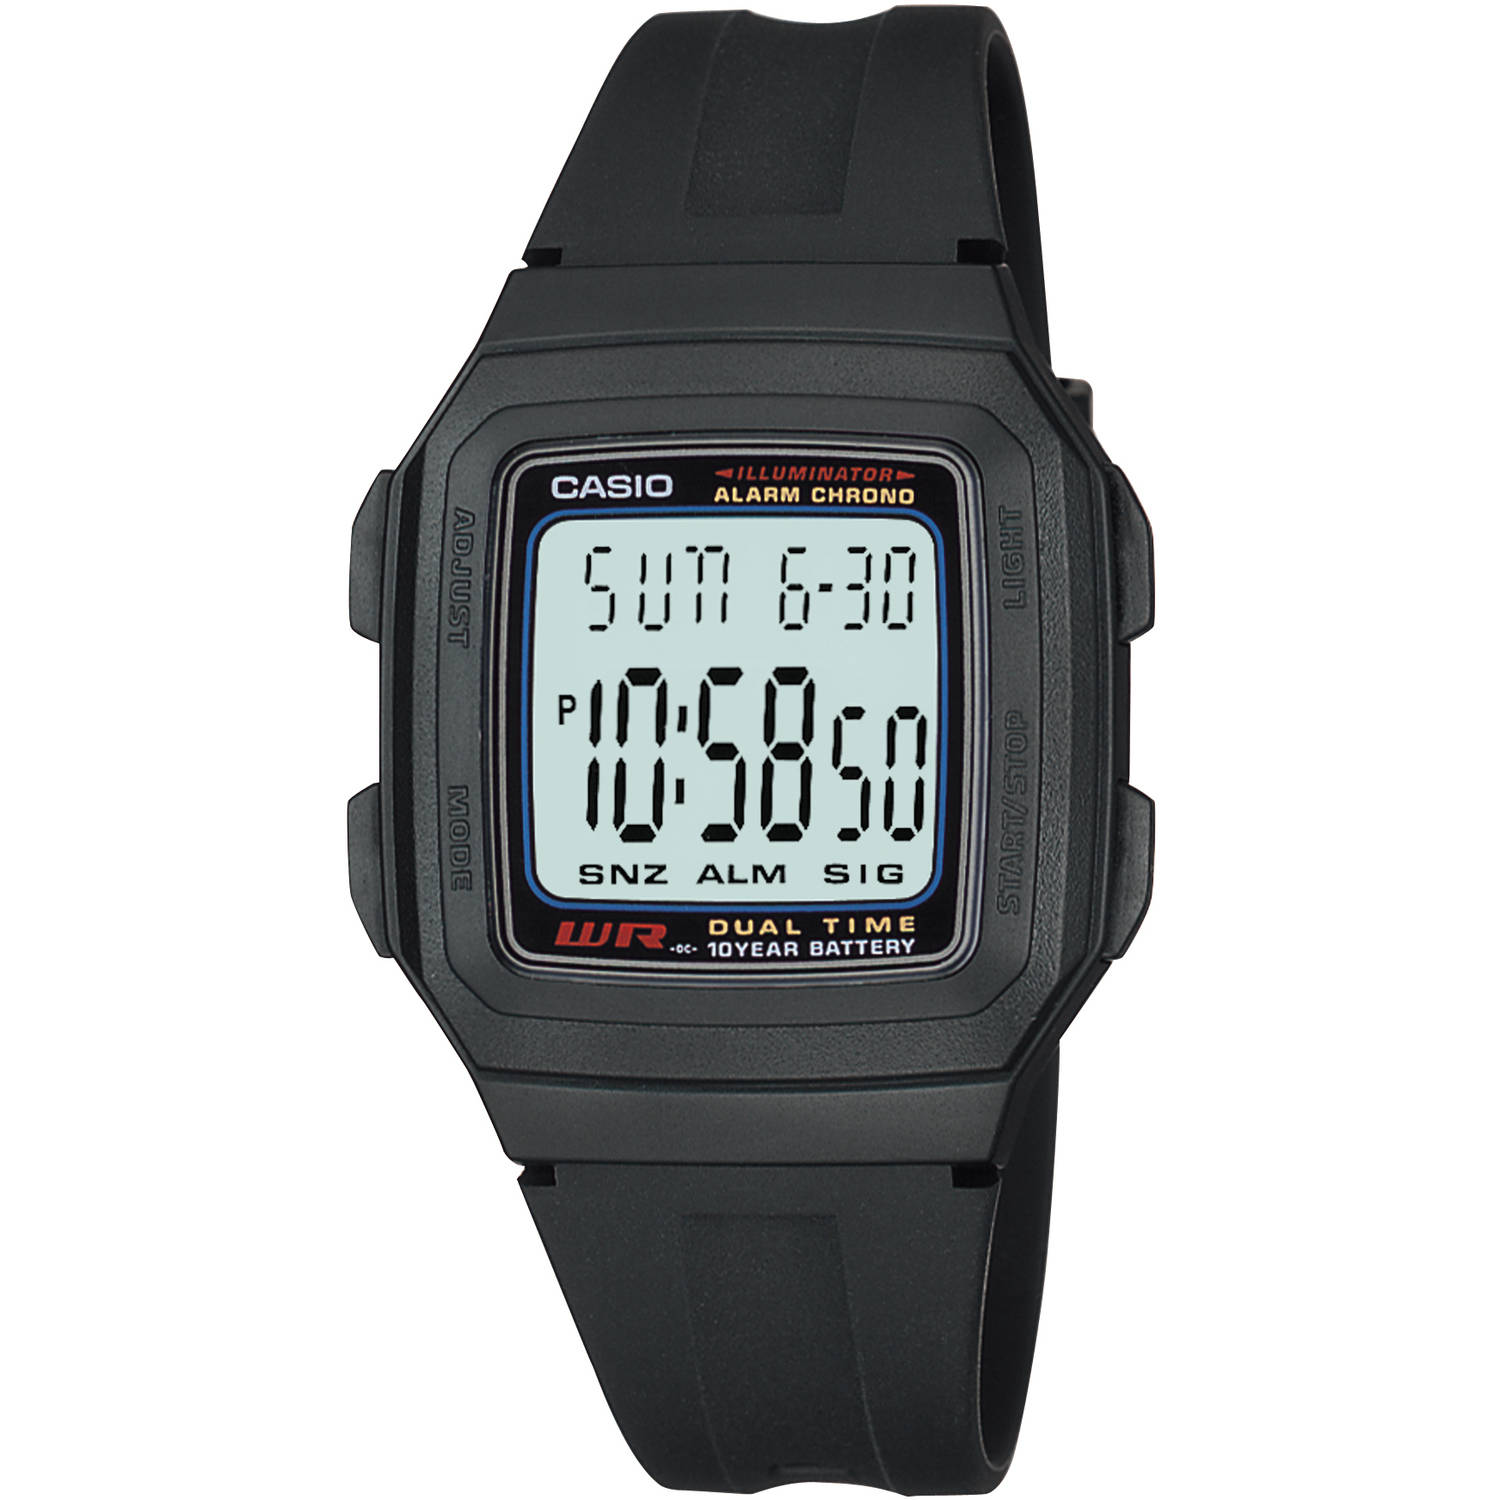 Casio Men's Digital Sport Watch, Black Resin Strap